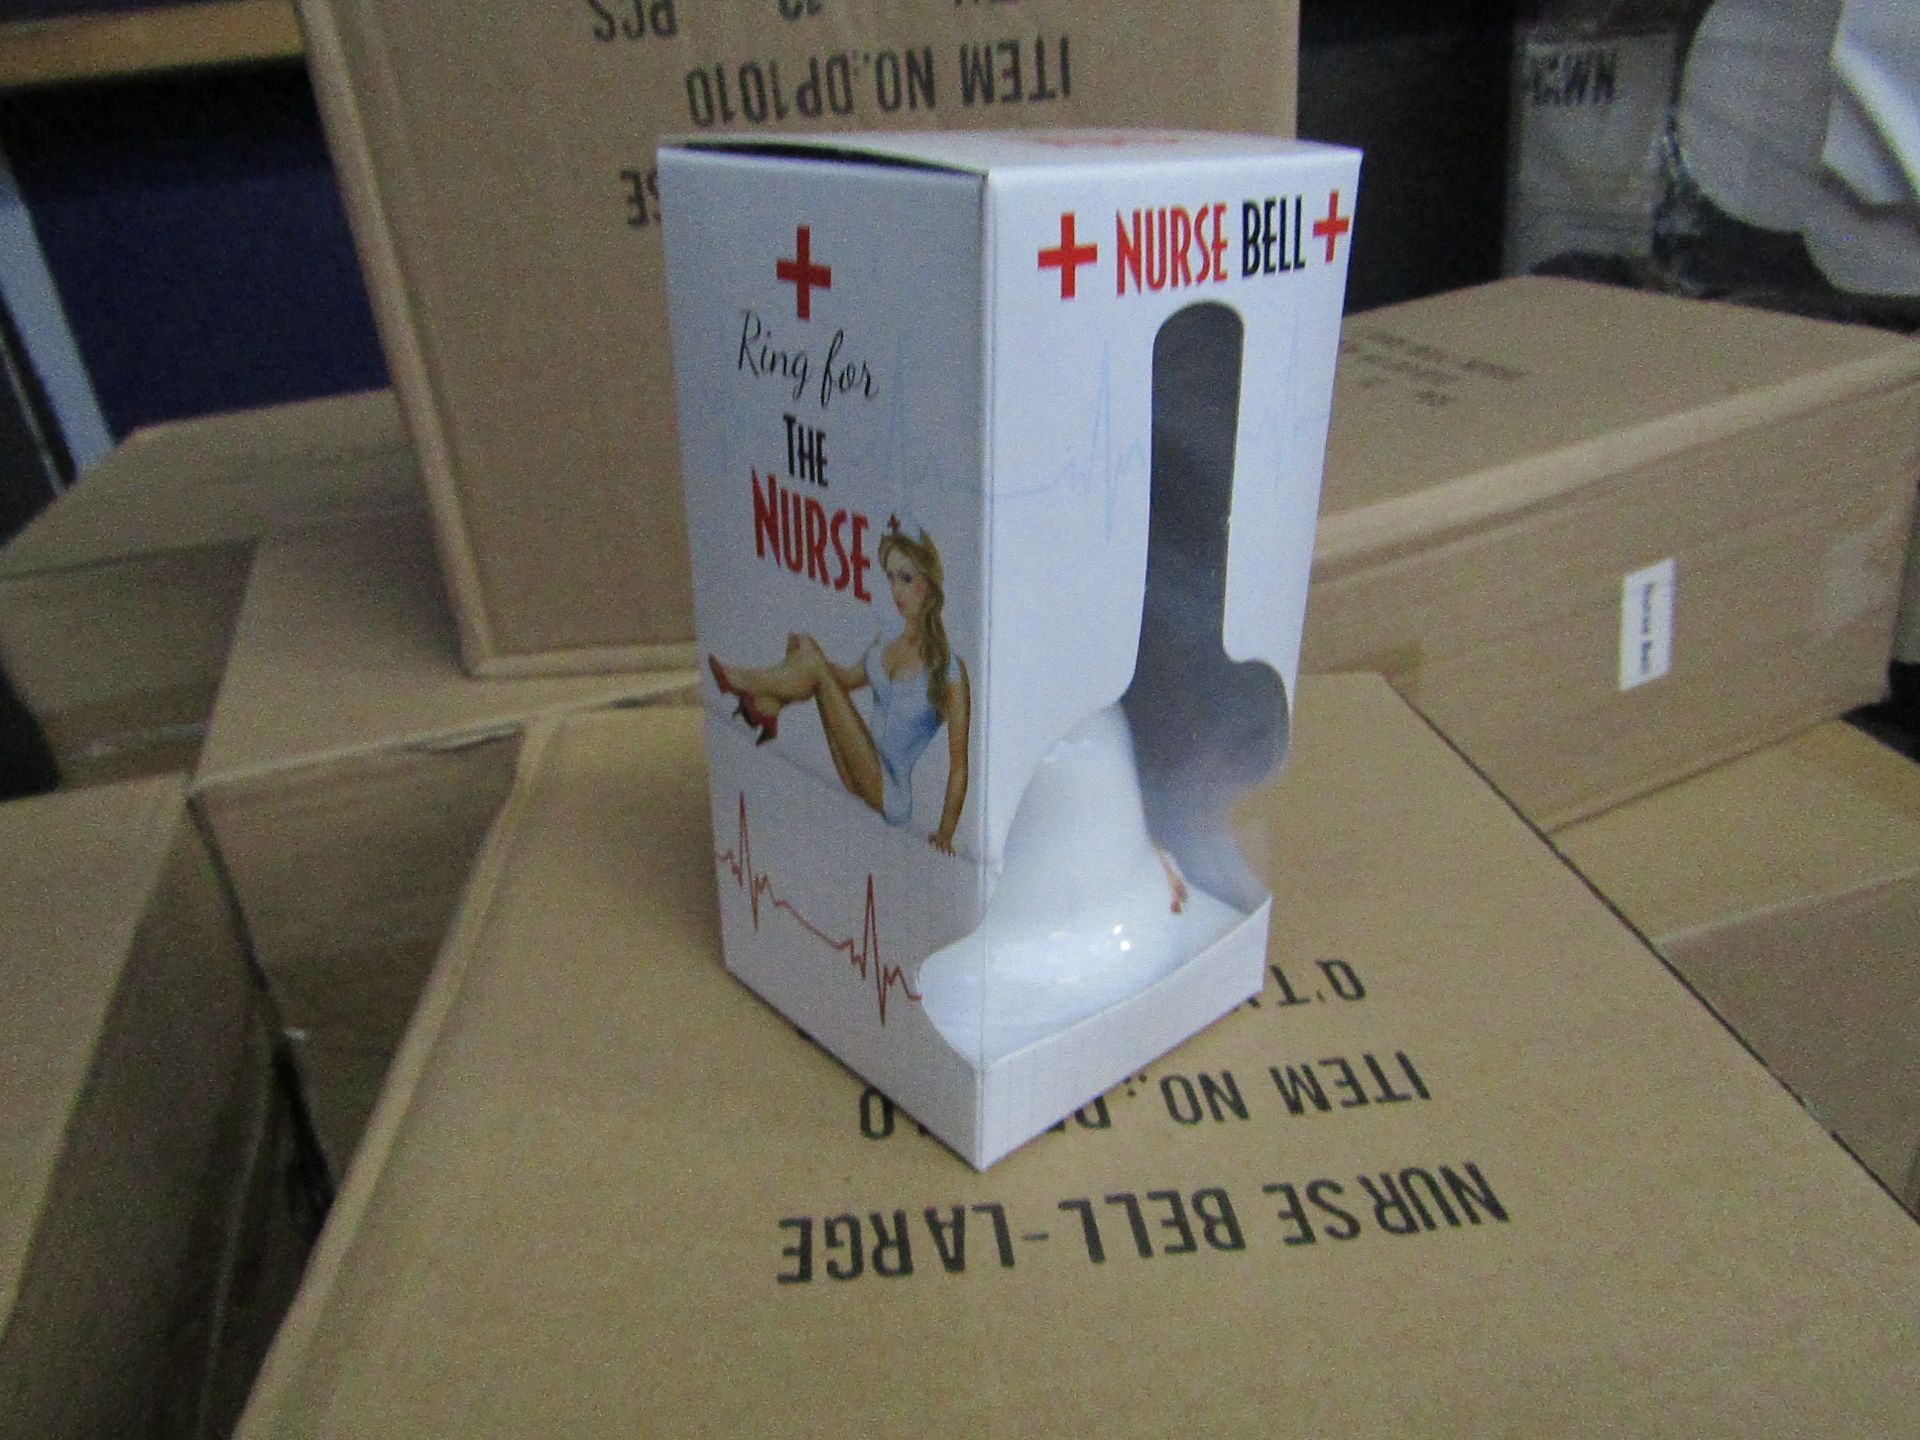 Pallet of approx 480 novelty ring for the nurse bells, new and packaged